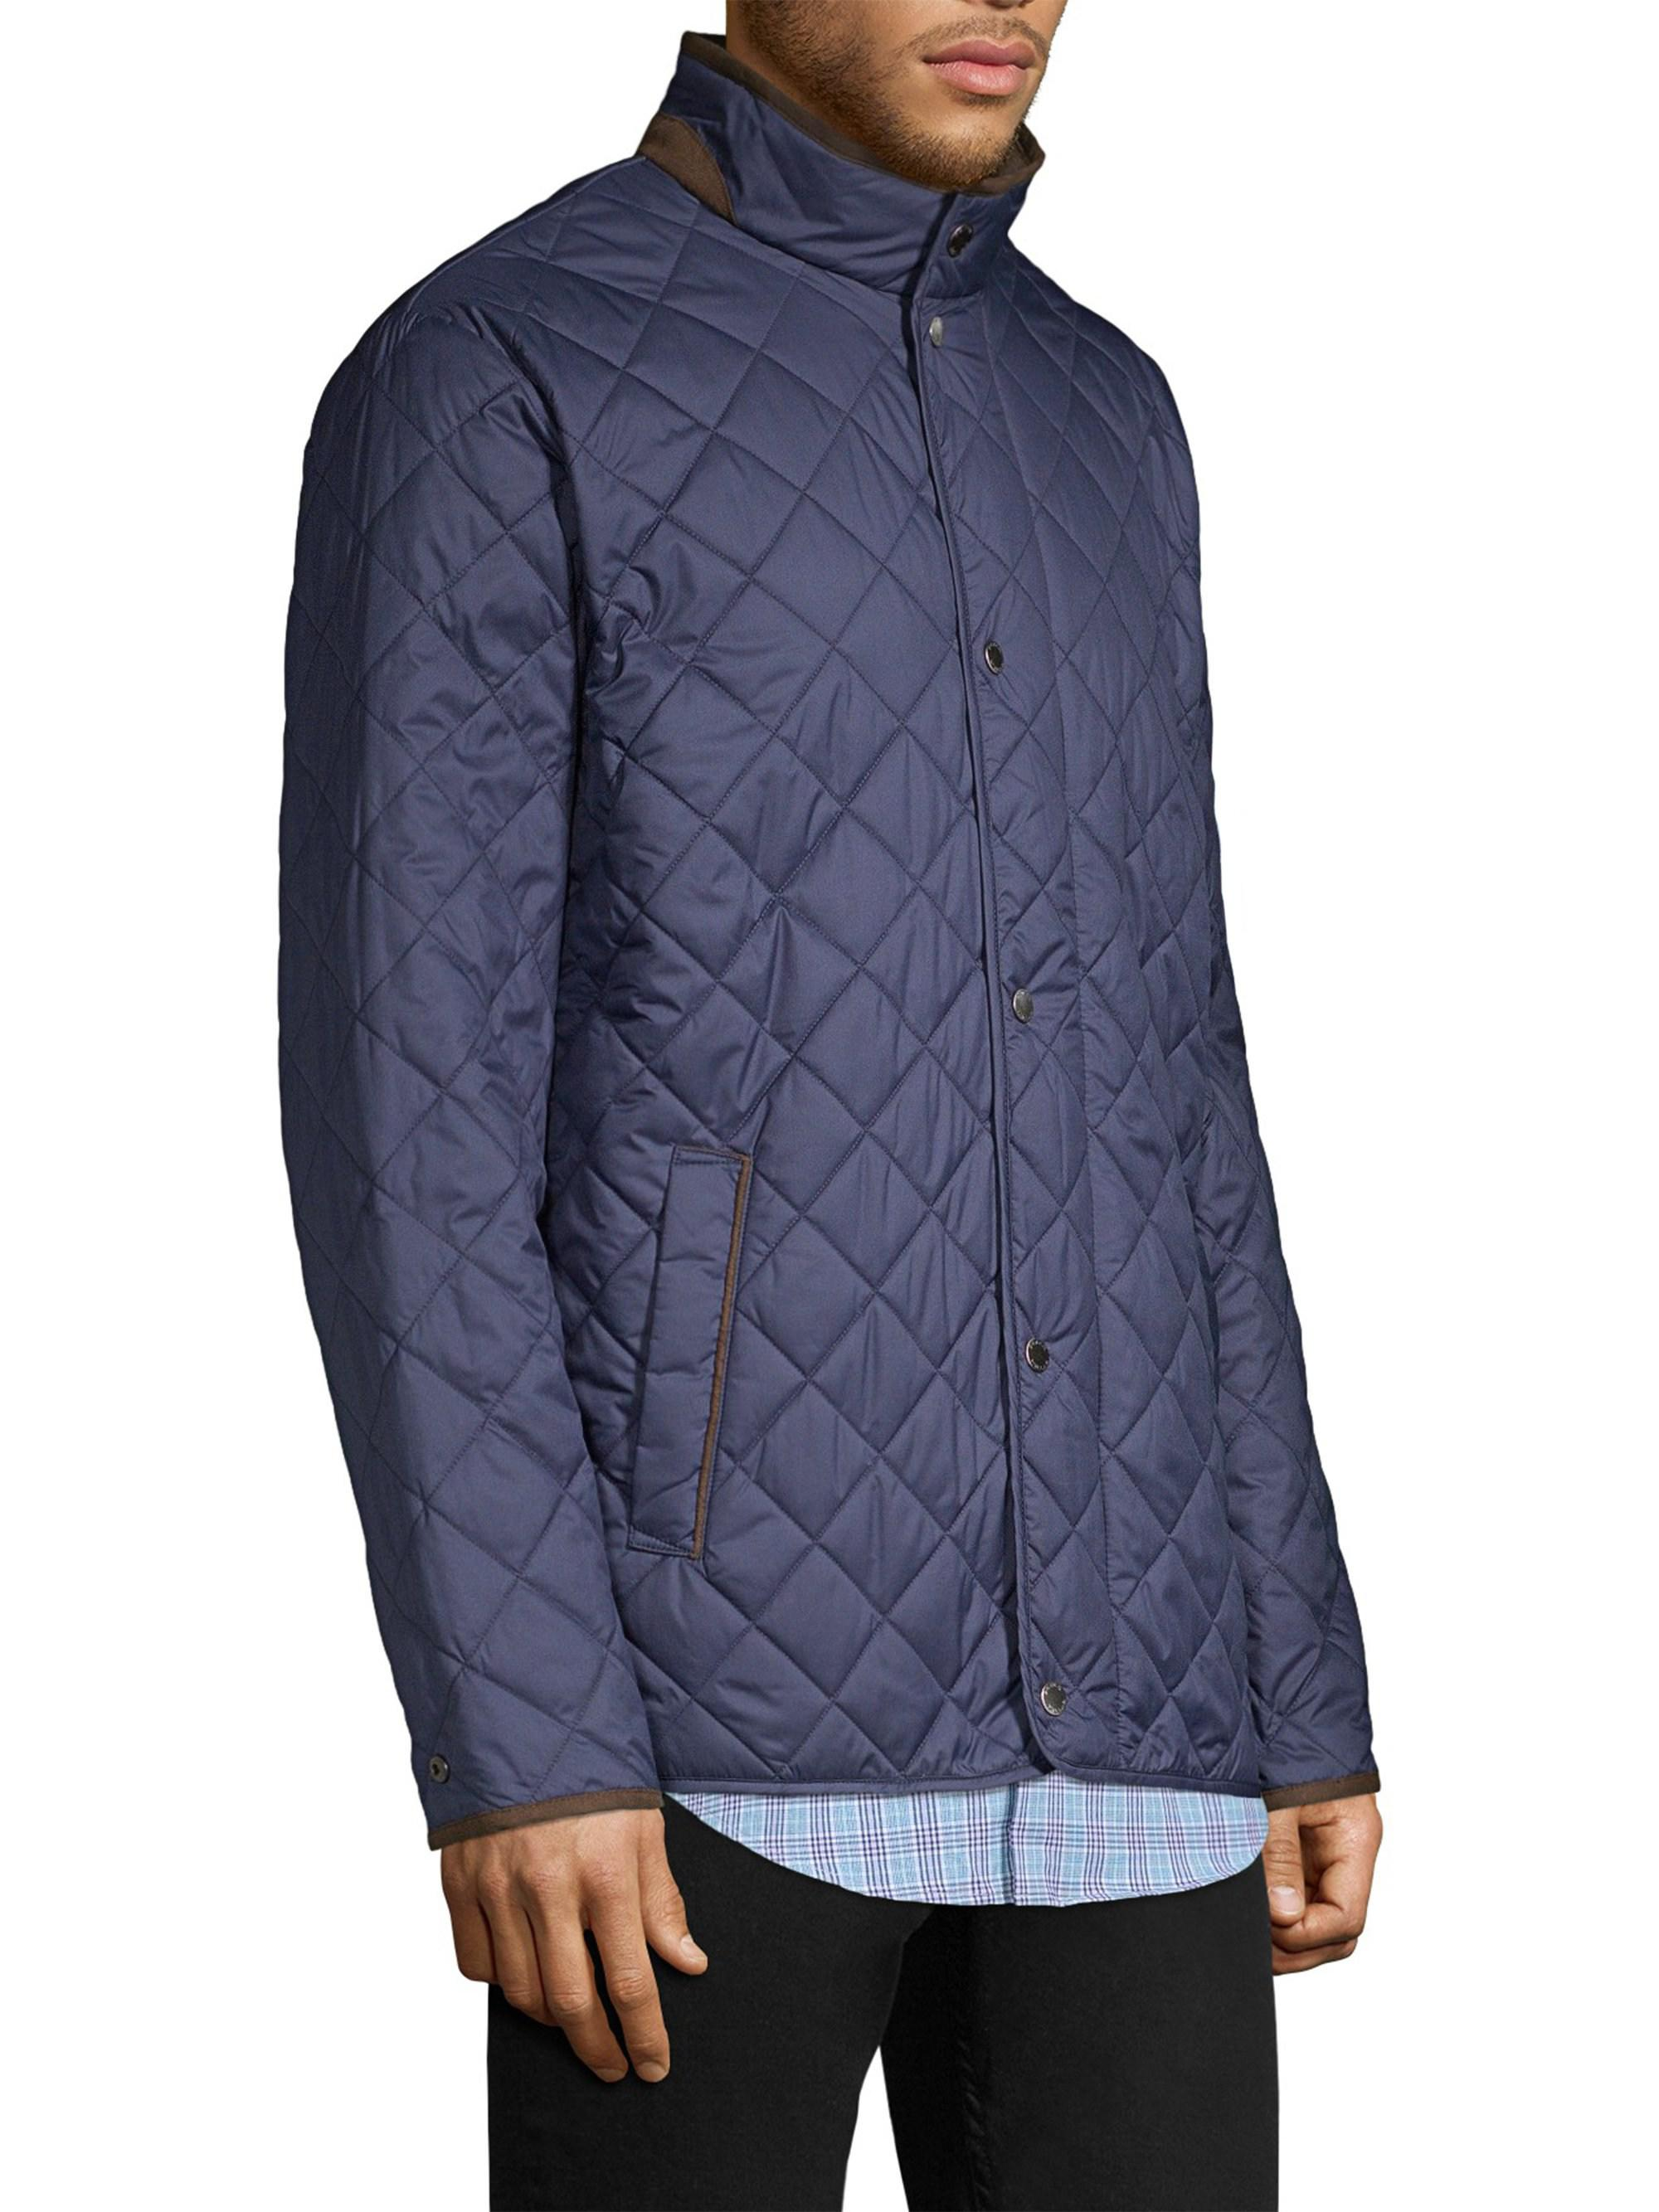 7c5ee3e3a195 Peter Millar Suffolk Quilted Jacket - Best Quilt Grafimage.co